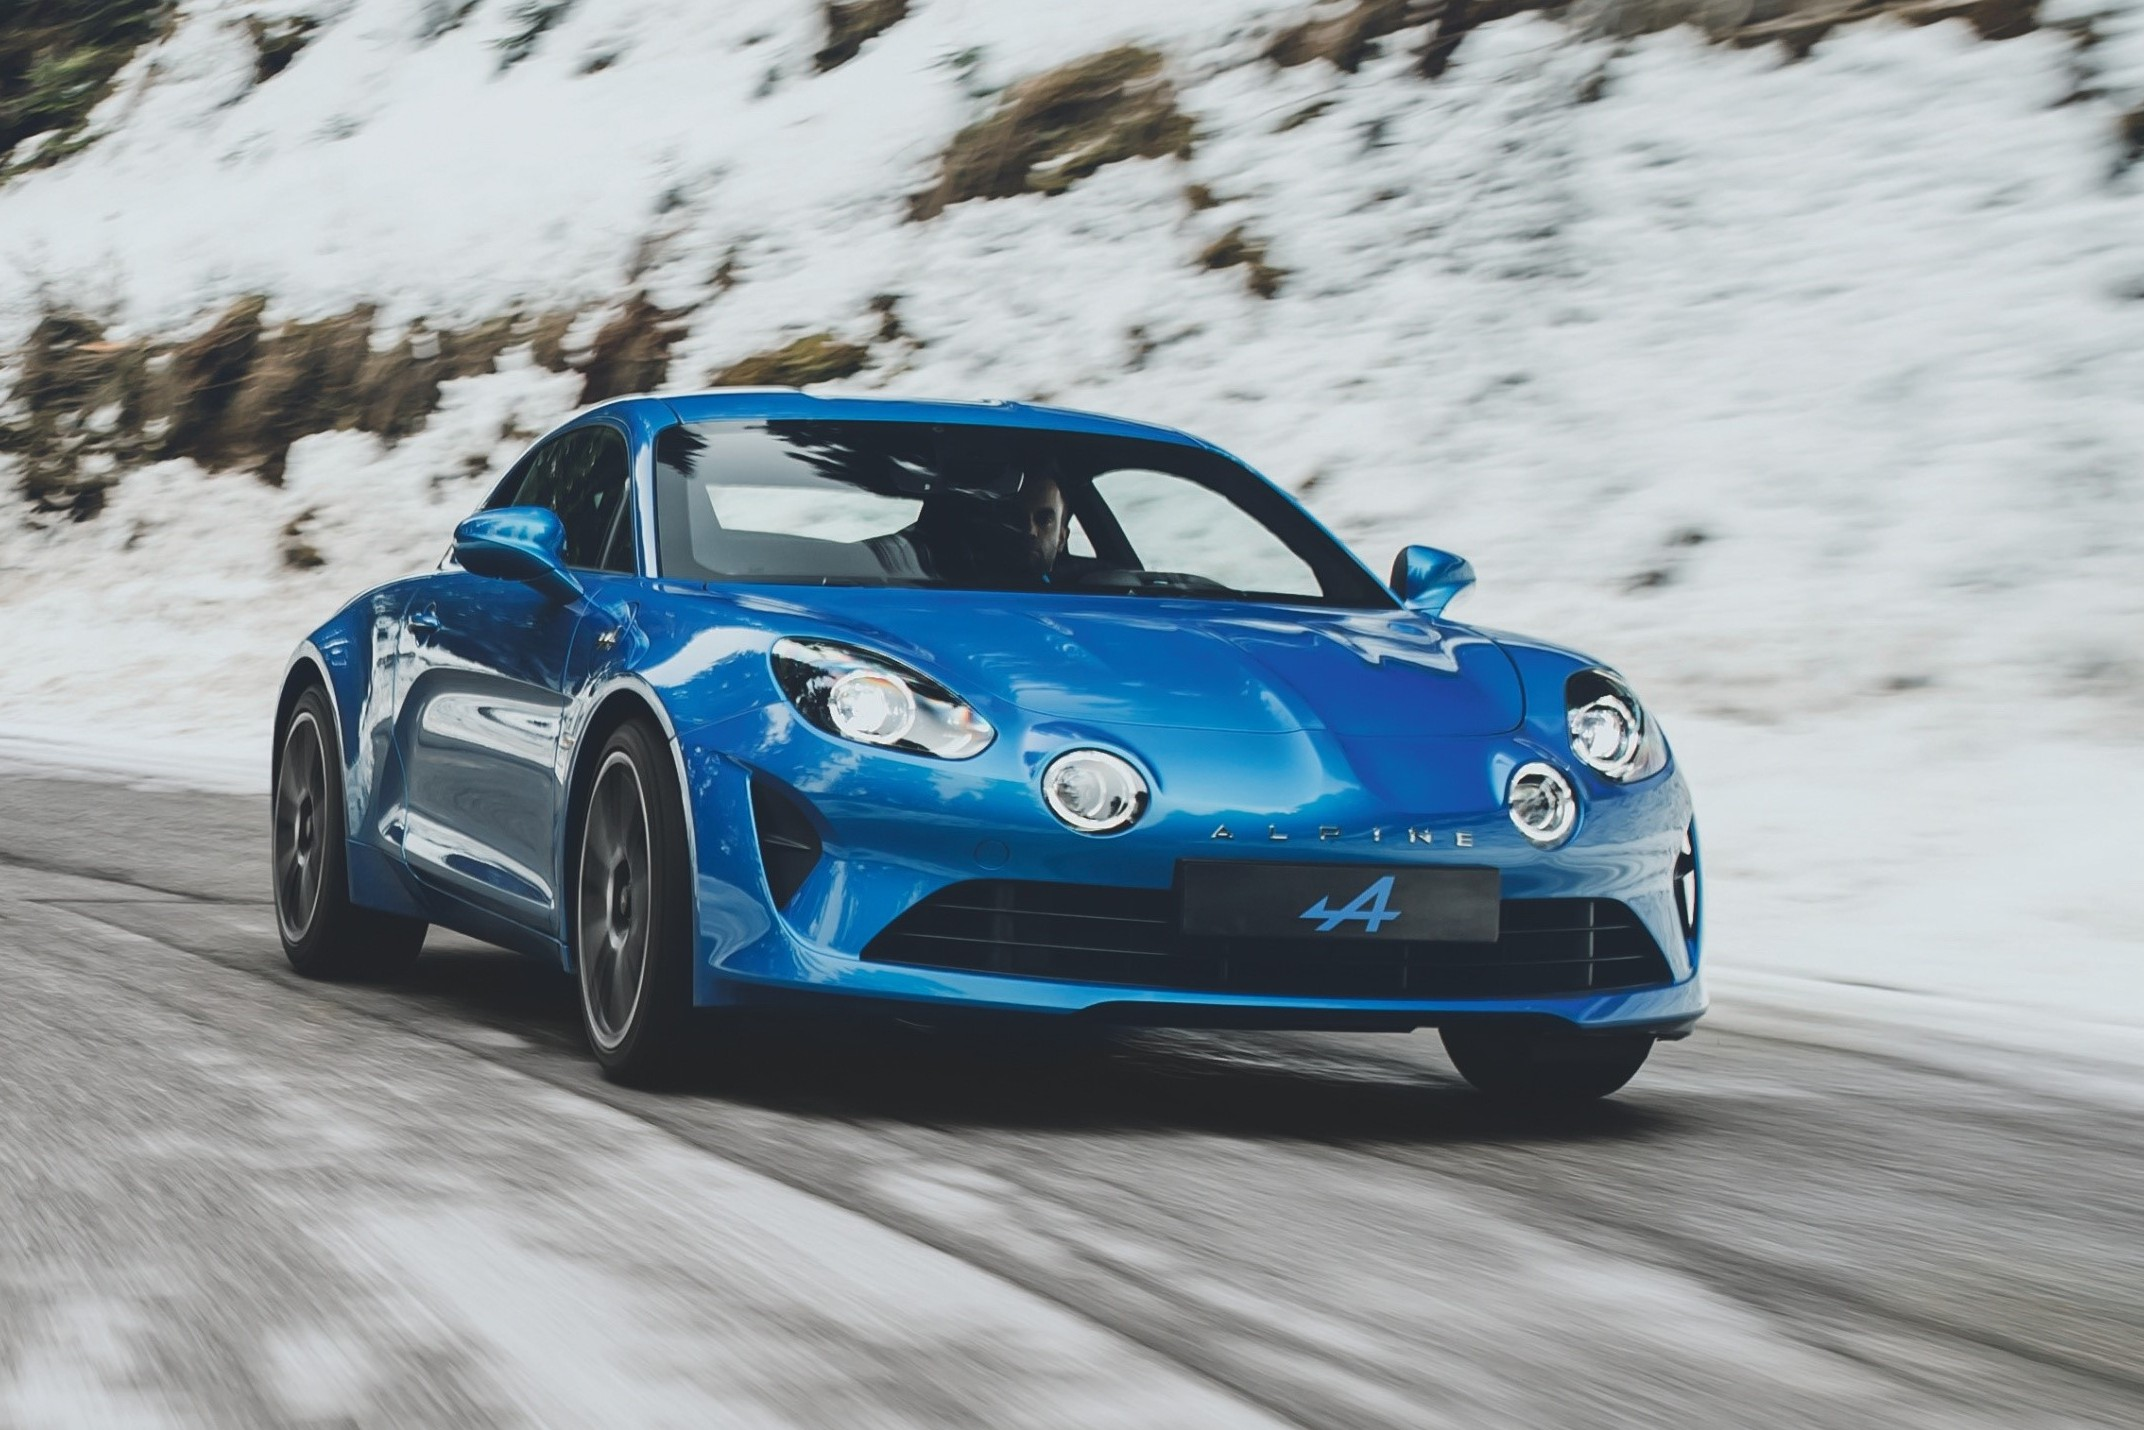 Renault has confirmed that the reborn Alpine A110 coupe will come to Australia.